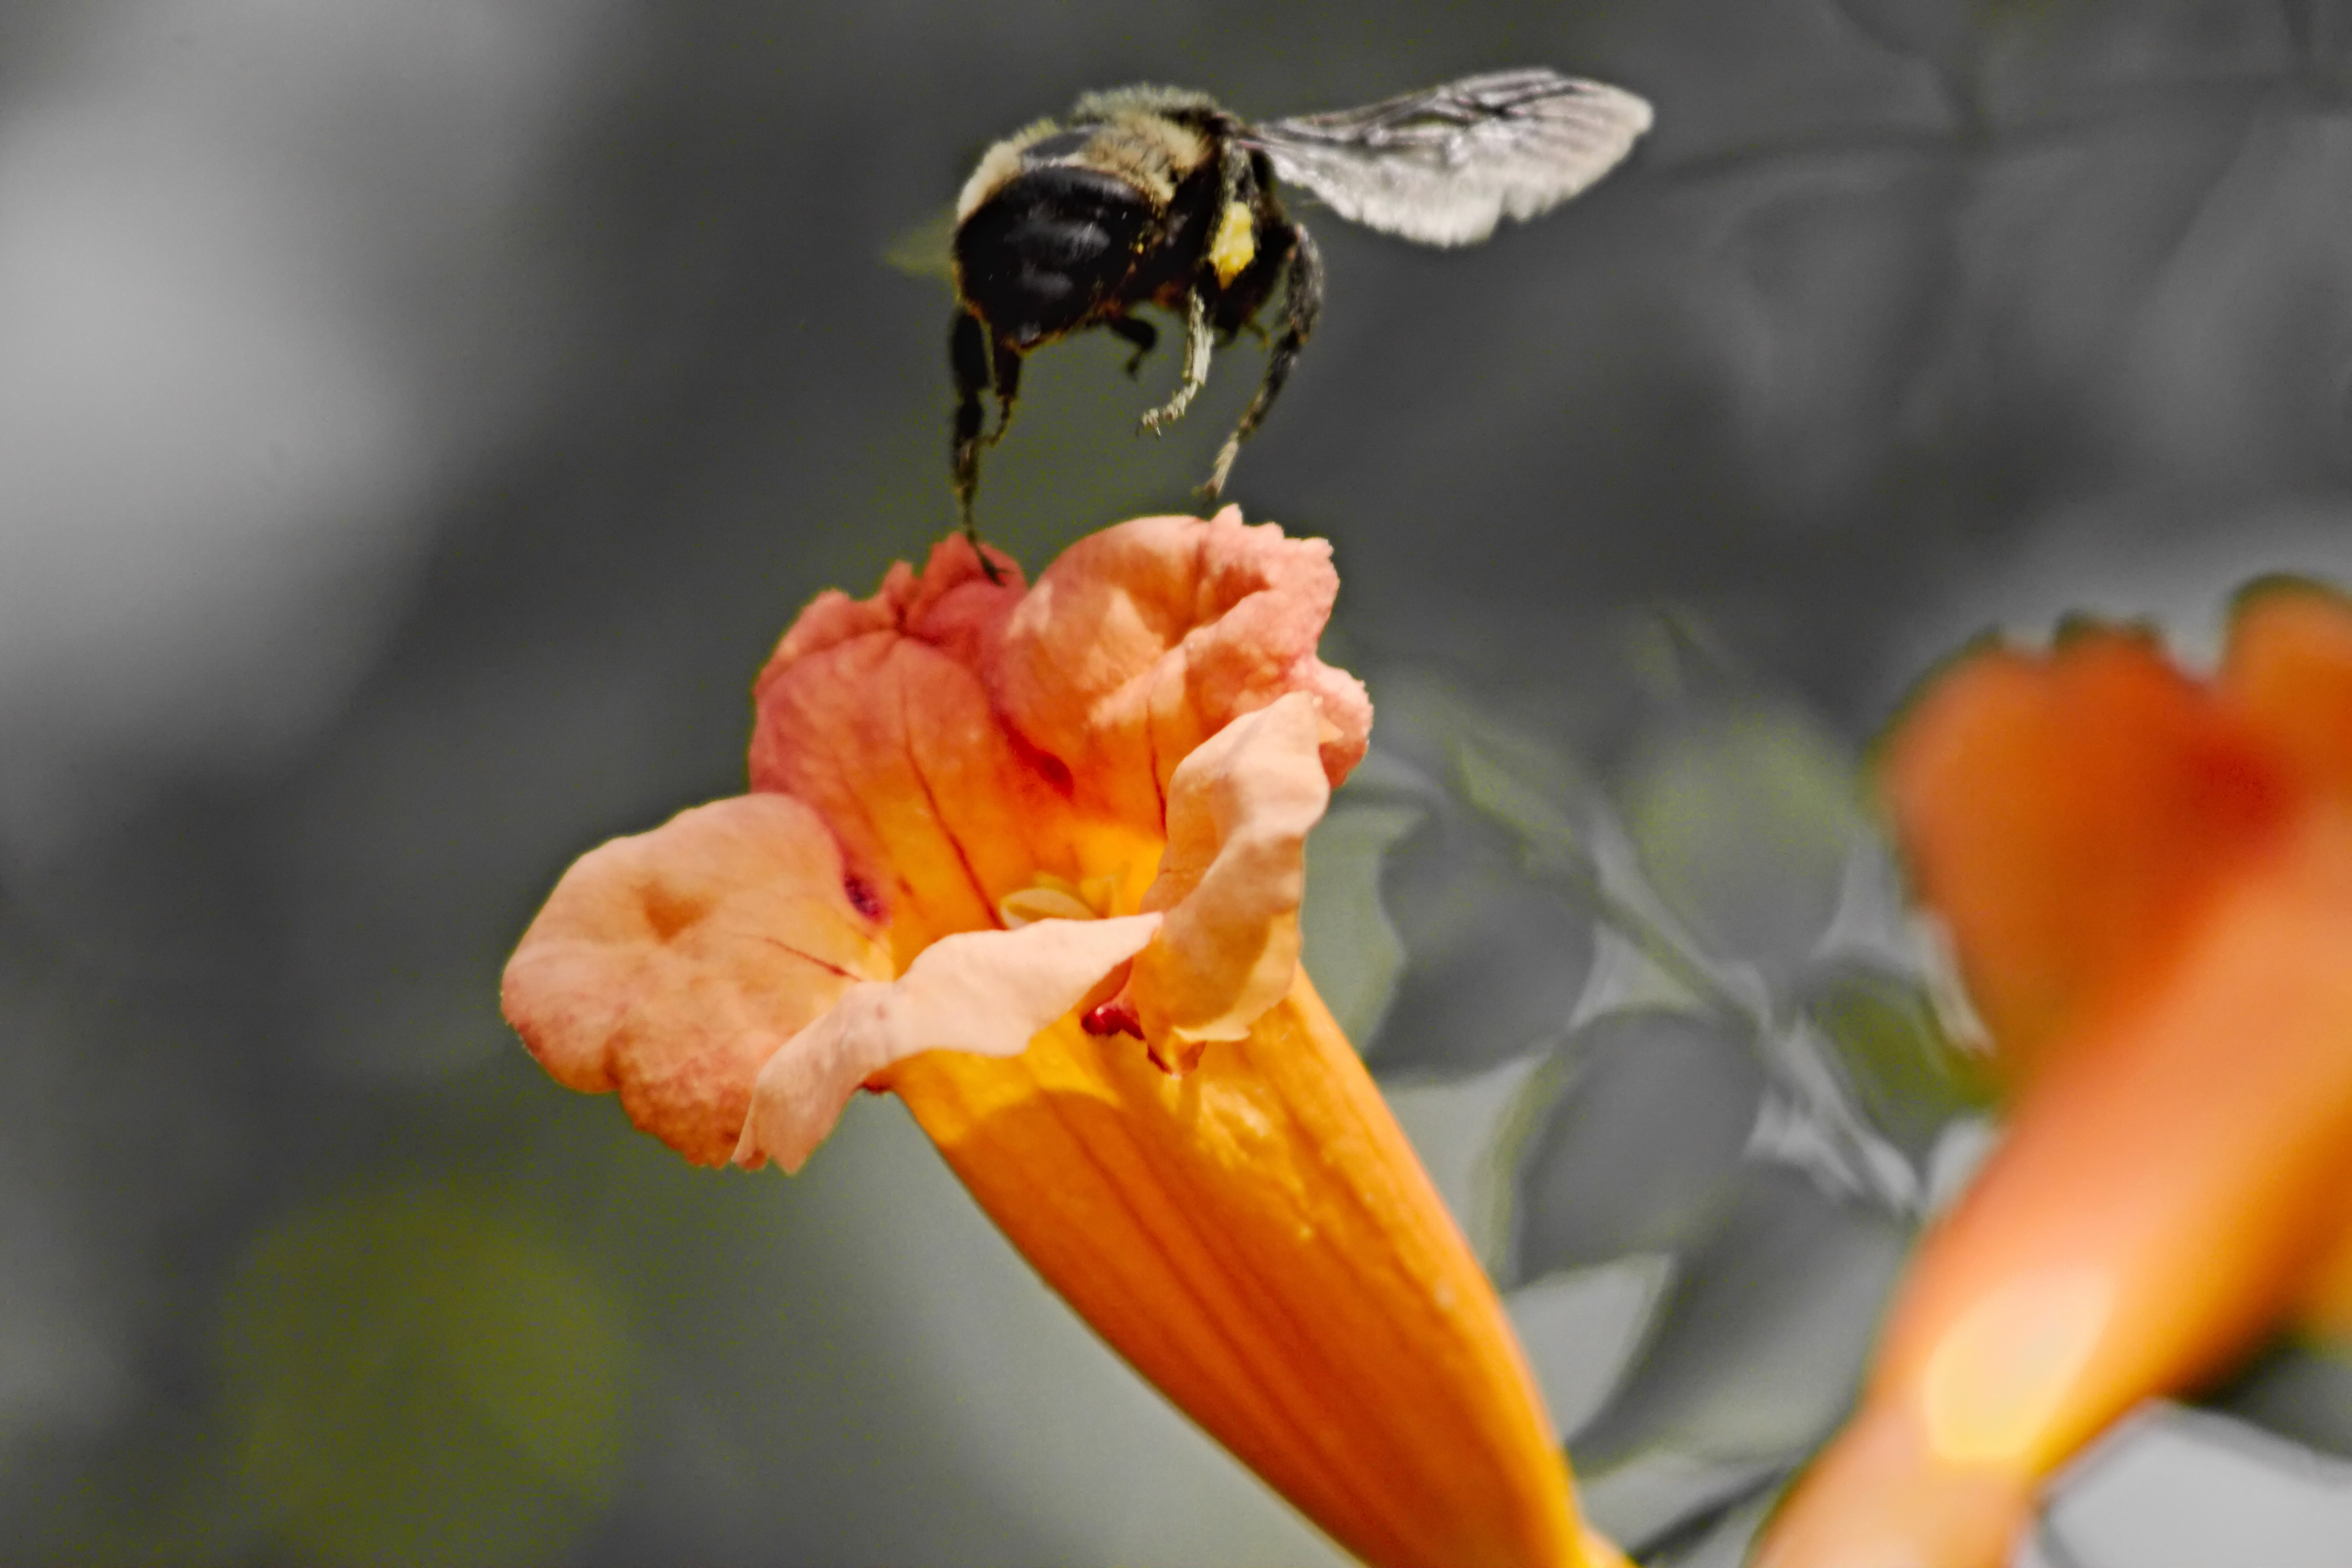 IMG_9082_v2_Trumpet Vine and Bee.jpg